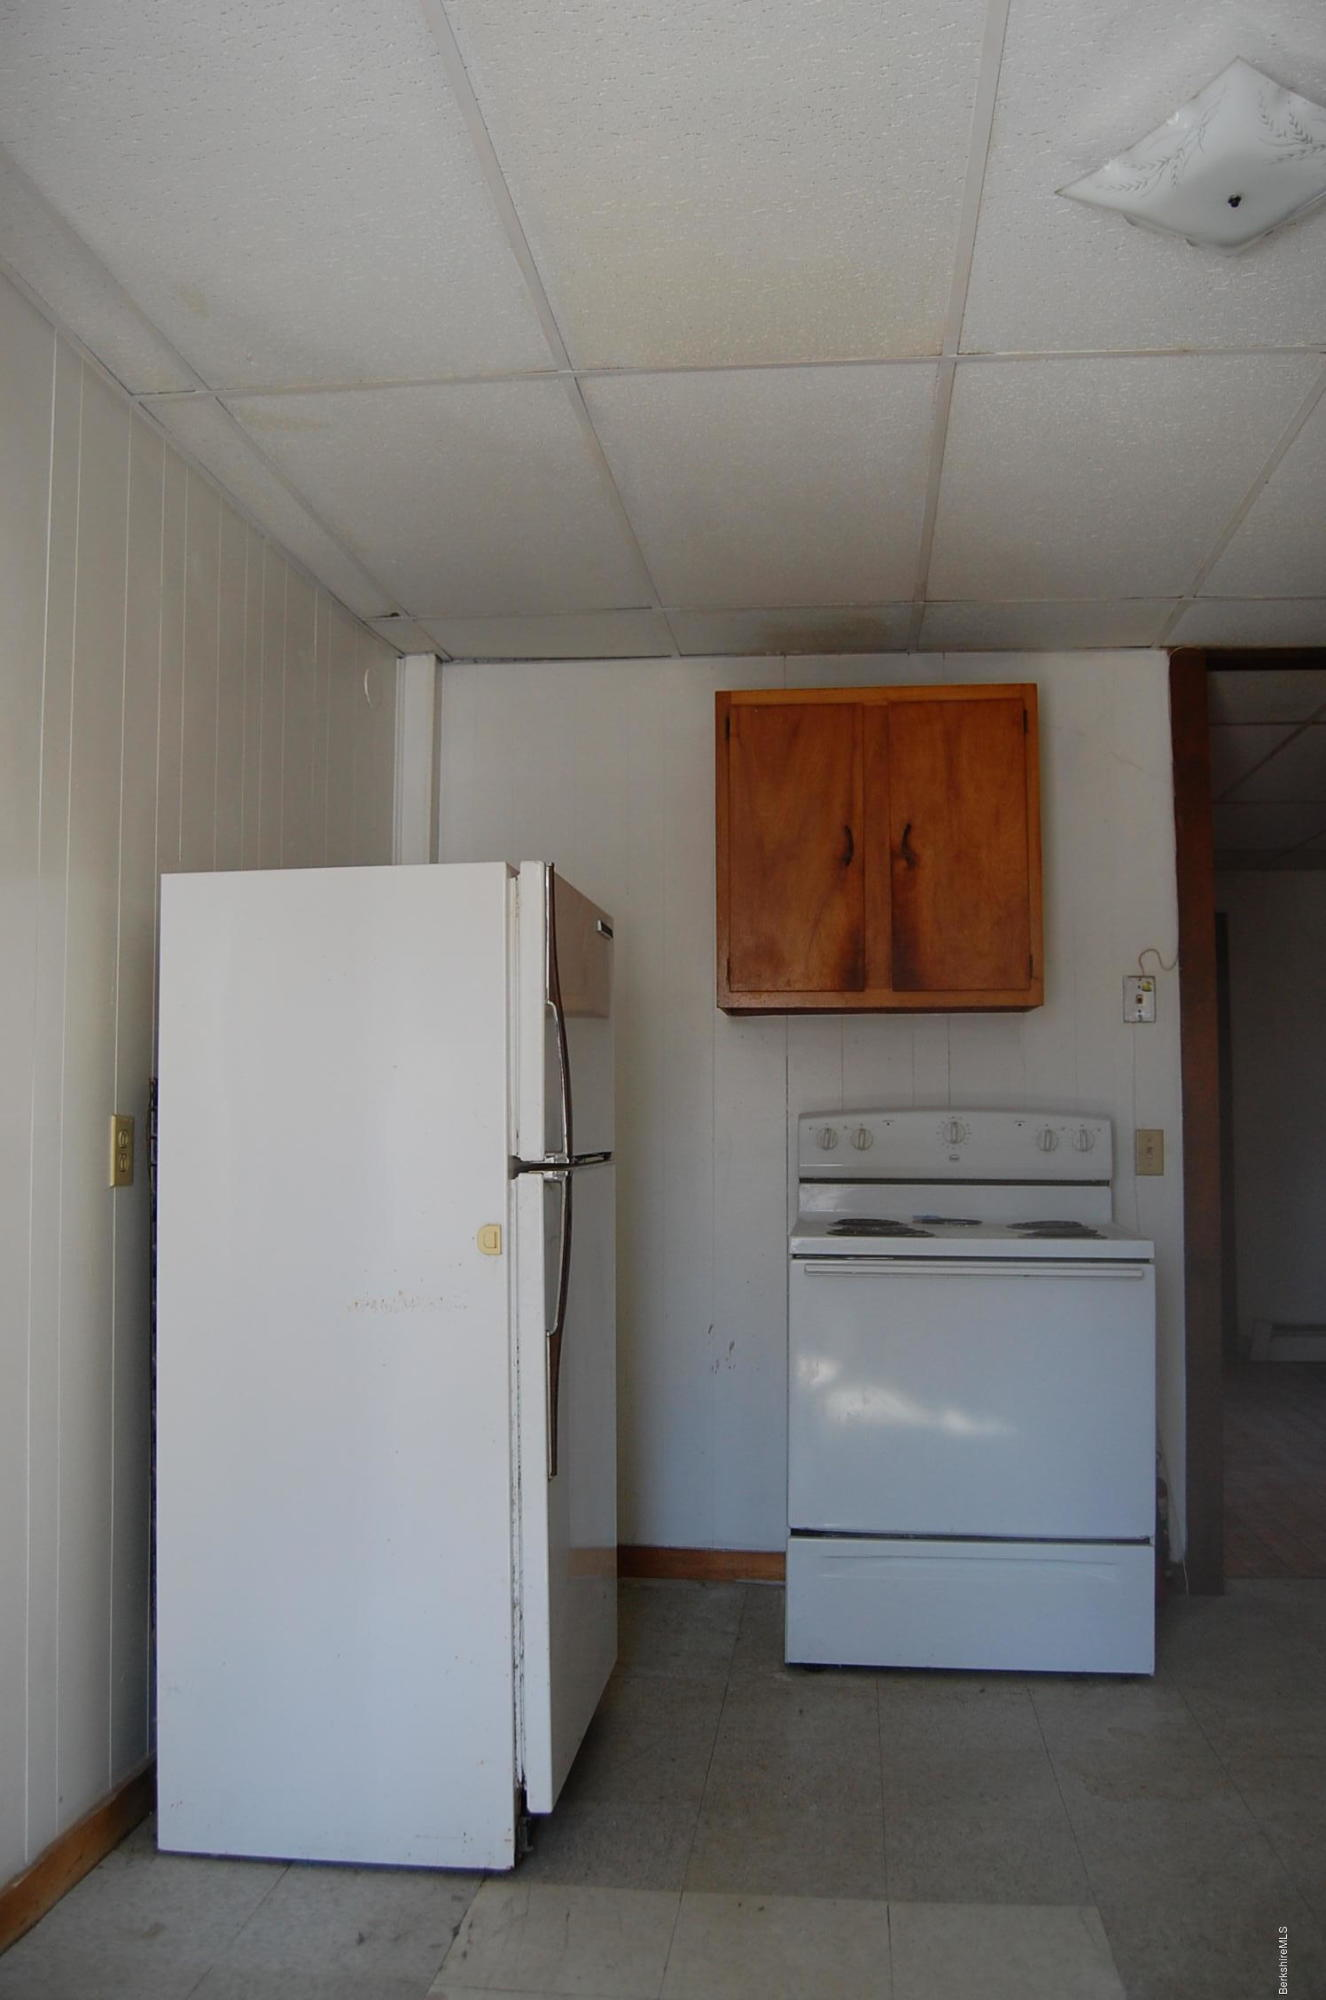 6. Stove and fridge